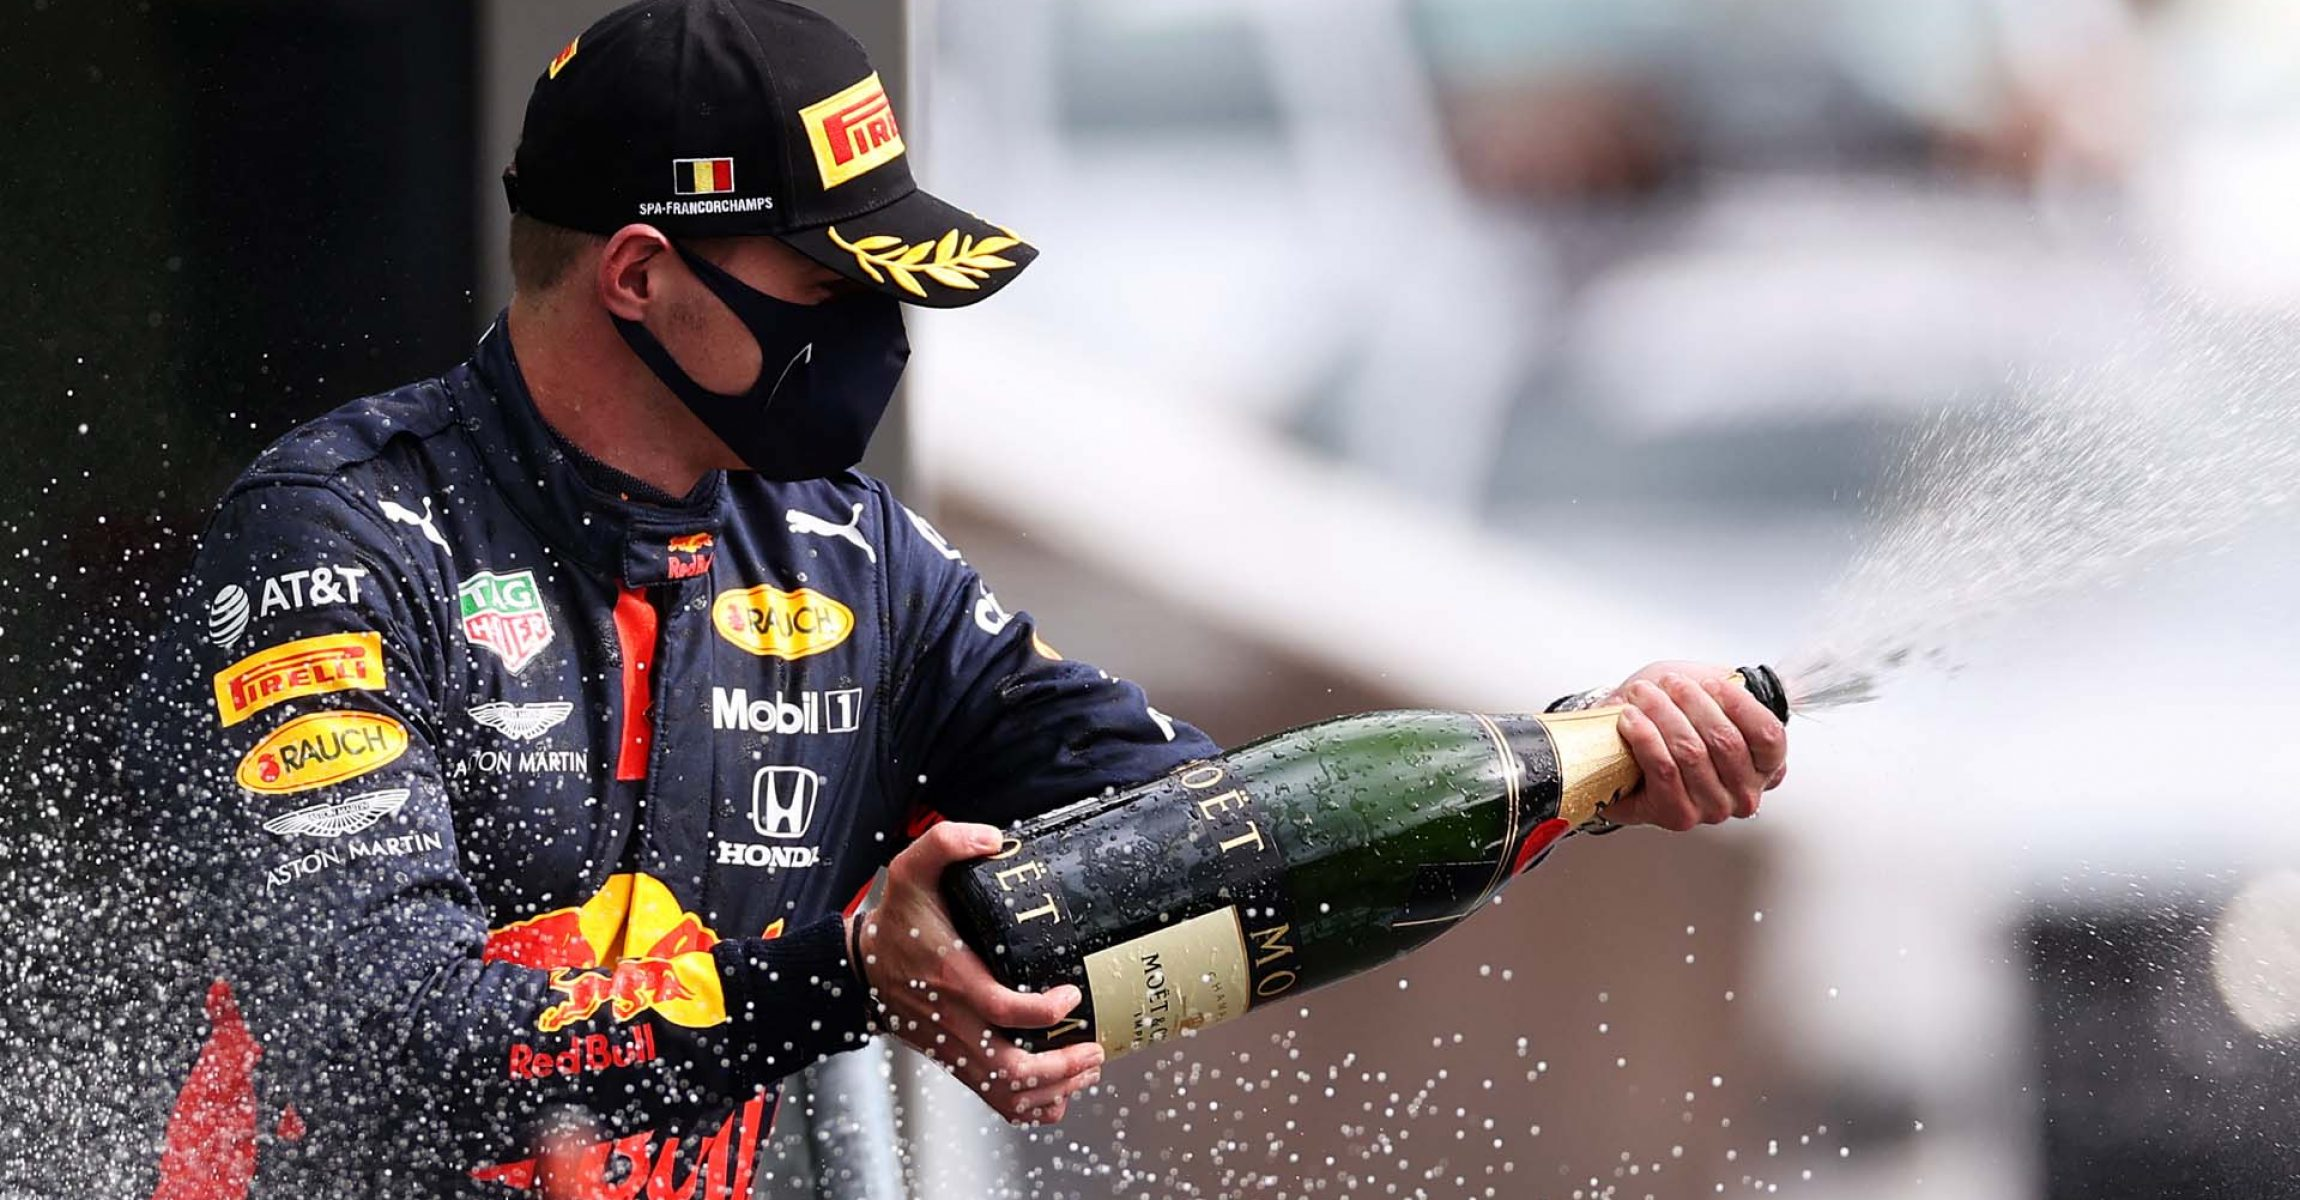 SPA, BELGIUM - AUGUST 30: Third placed Max Verstappen of Netherlands and Red Bull Racing celebrates on the podium during the F1 Grand Prix of Belgium at Circuit de Spa-Francorchamps on August 30, 2020 in Spa, Belgium. (Photo by Lars Baron/Getty Images)